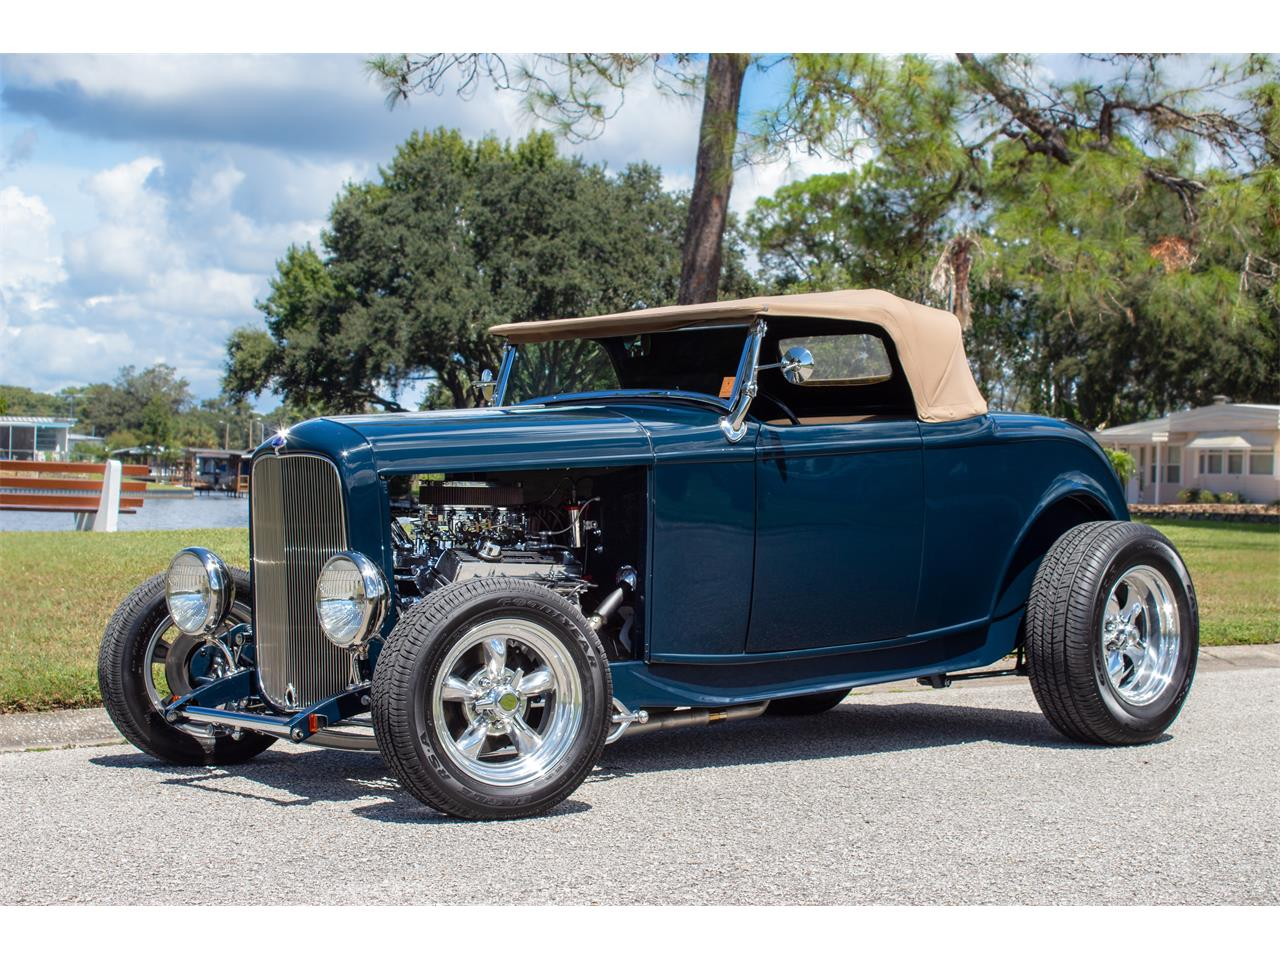 Large picture of 32 model a oip9